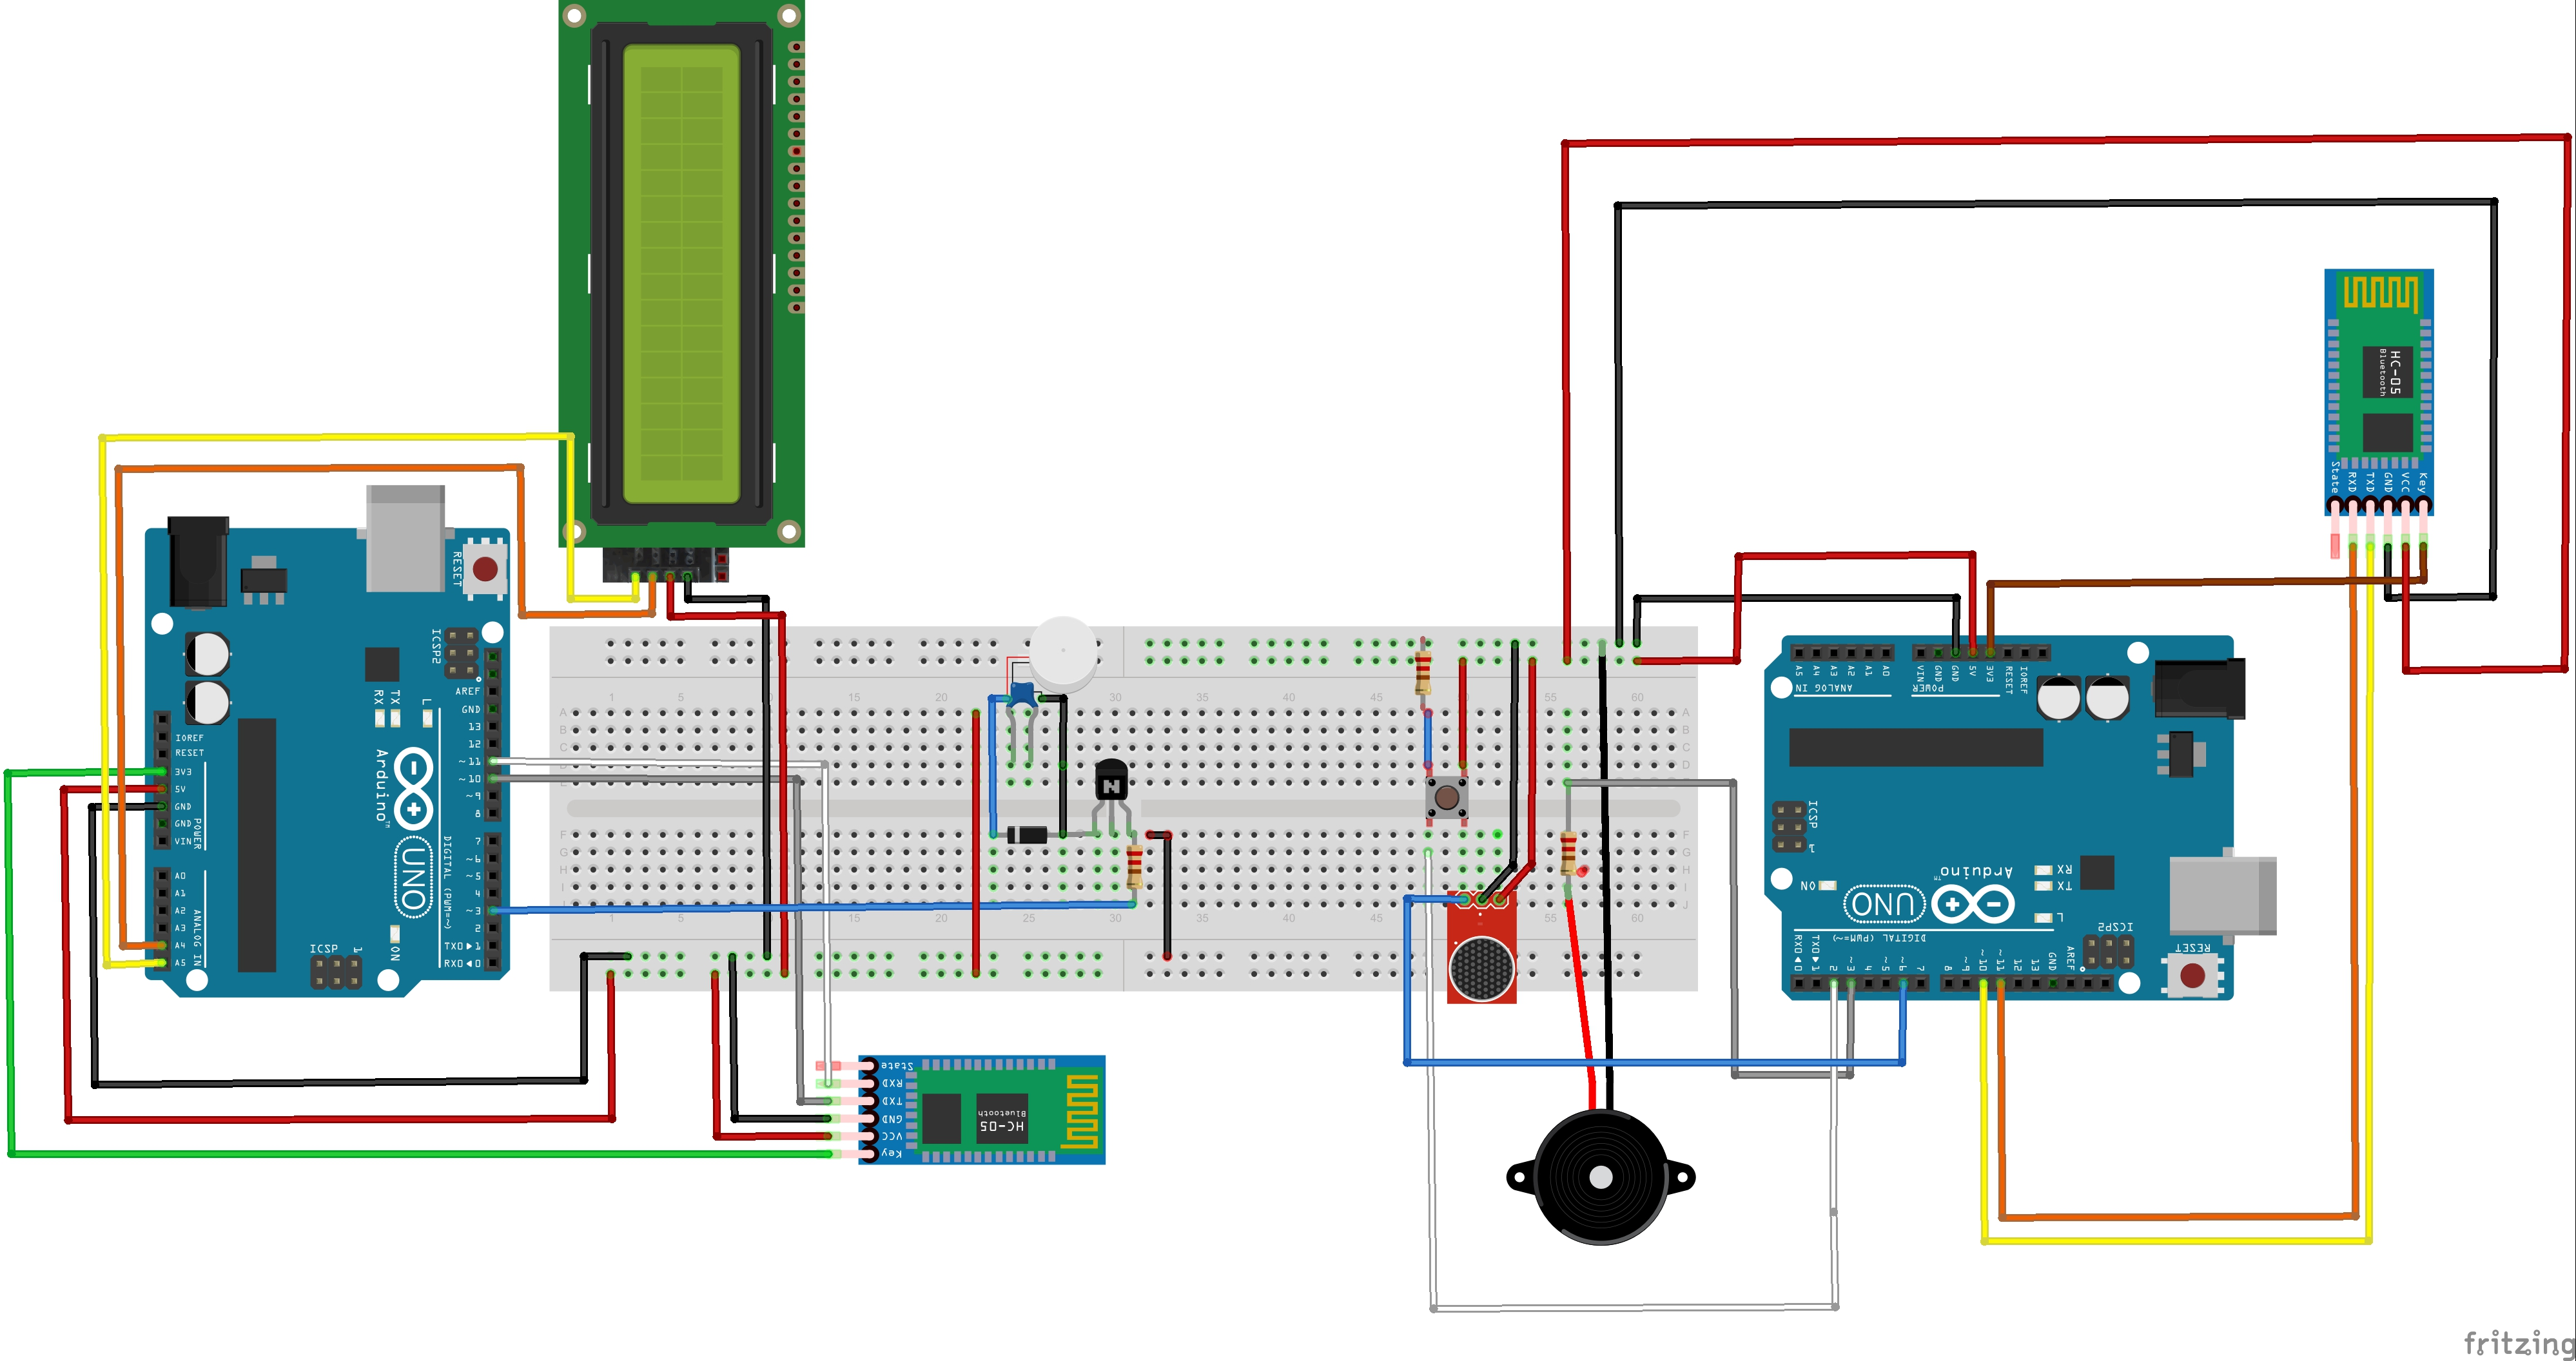 Crystal Controlled 38 Khz Ir Transmitter further Electric Bicycle Batteries Lithium Vs Lead Acid Batteries furthermore How To Build An Arduino Wifi 4x4 With Android Controller as well  additionally 20535 Esp32 Wroom Web Server Meets Some Nema17 Steppers. on motor circuit diagram